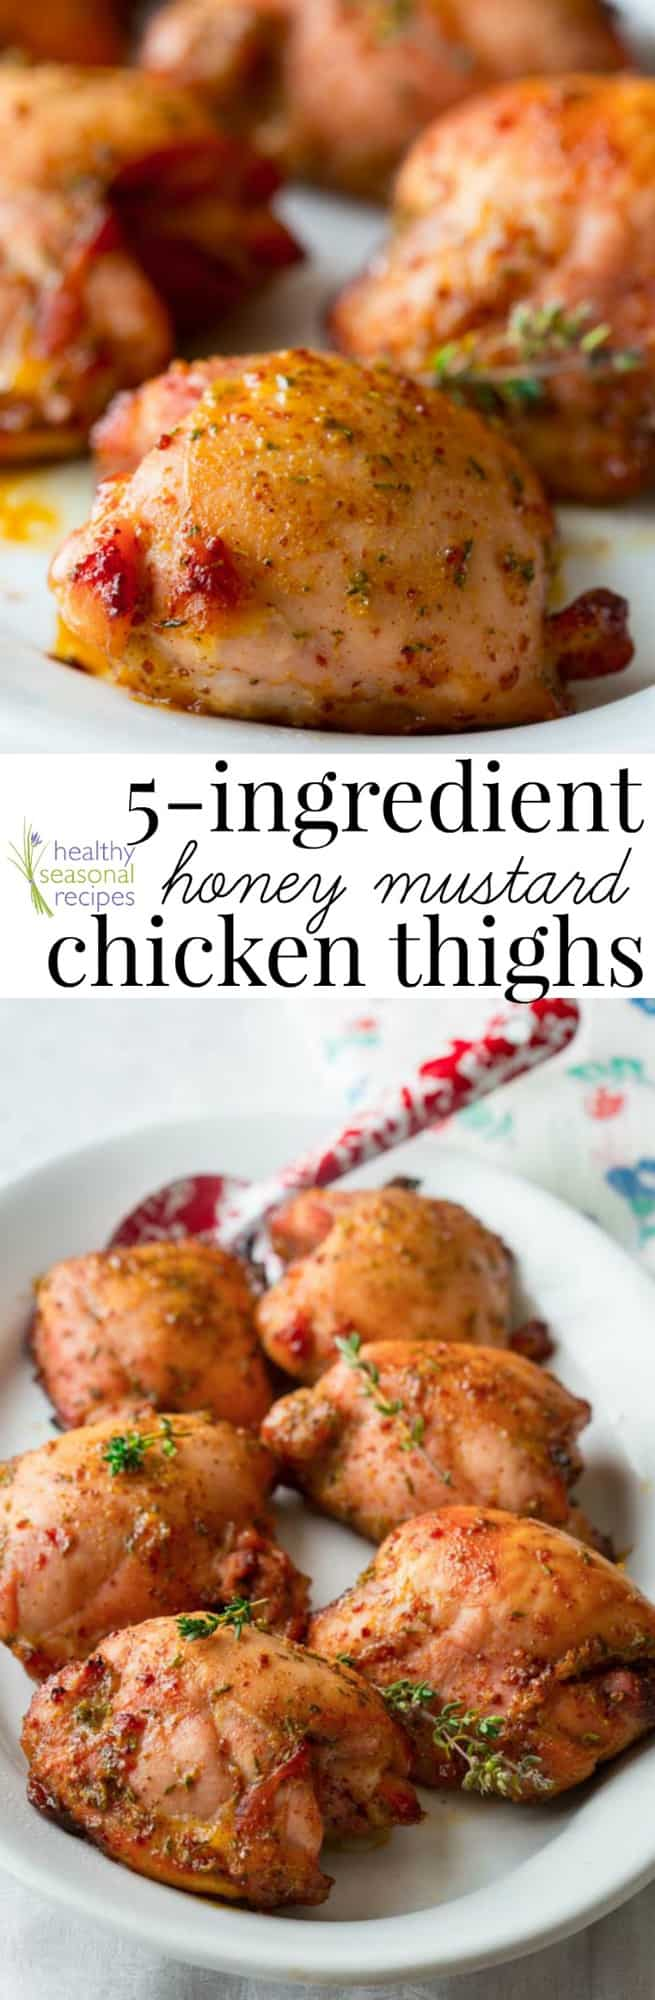 5 Ingredient Honey Mustard Chicken Thighs Healthy Seasonal Recipes